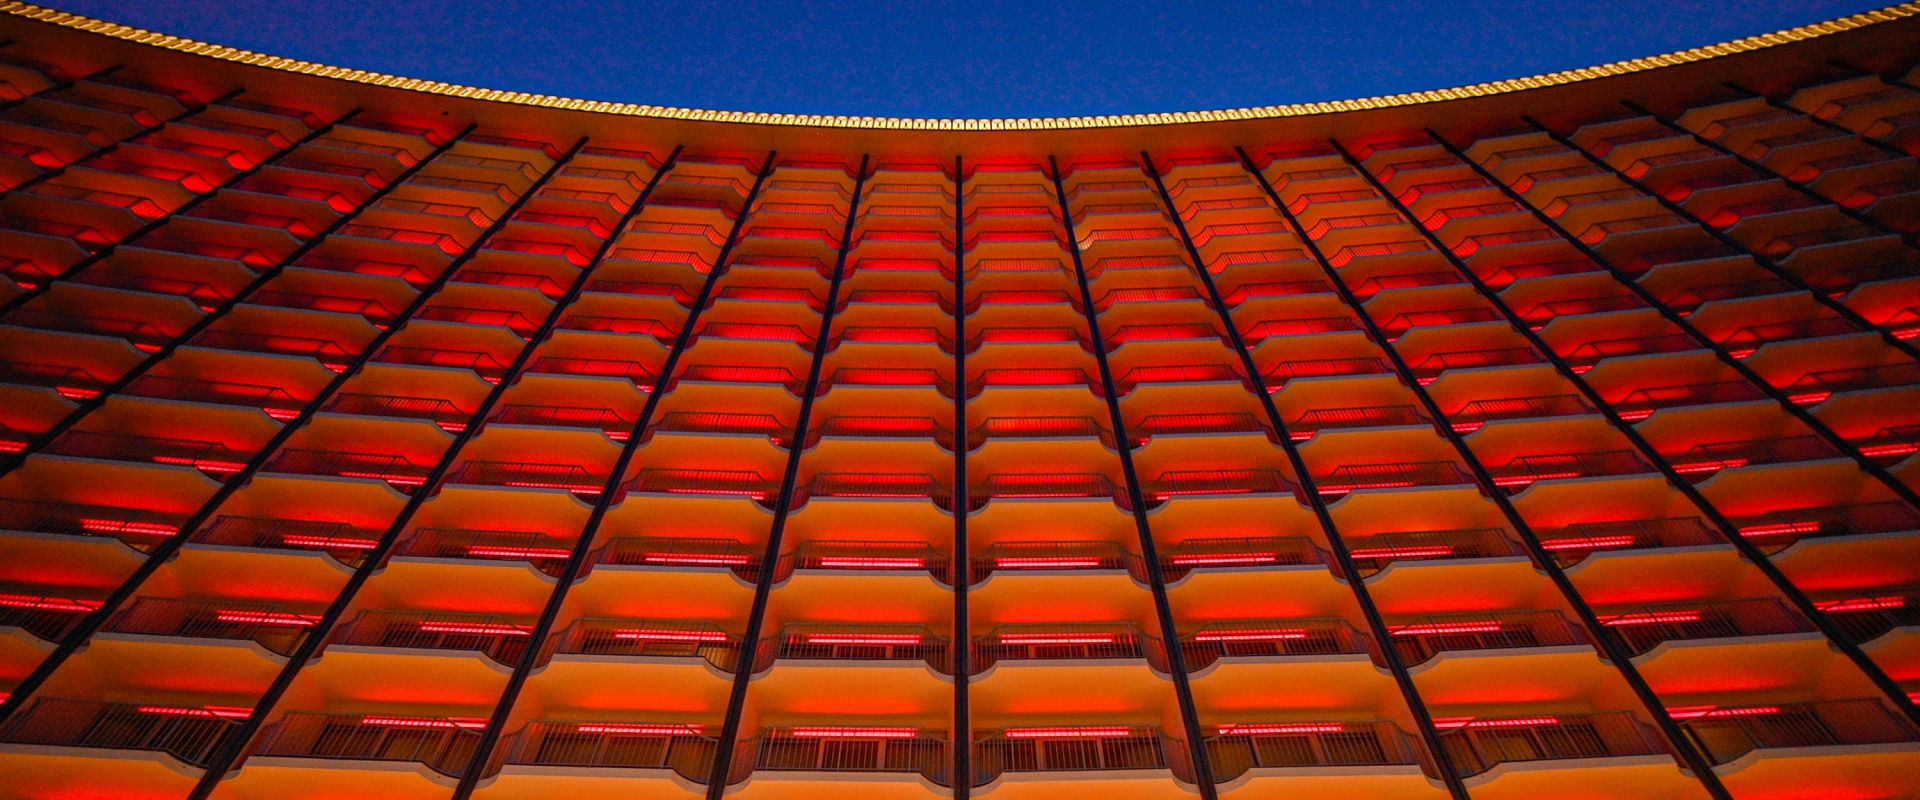 A view of the Fairmont Century Plaza many balconies, illuminated in red and organge.